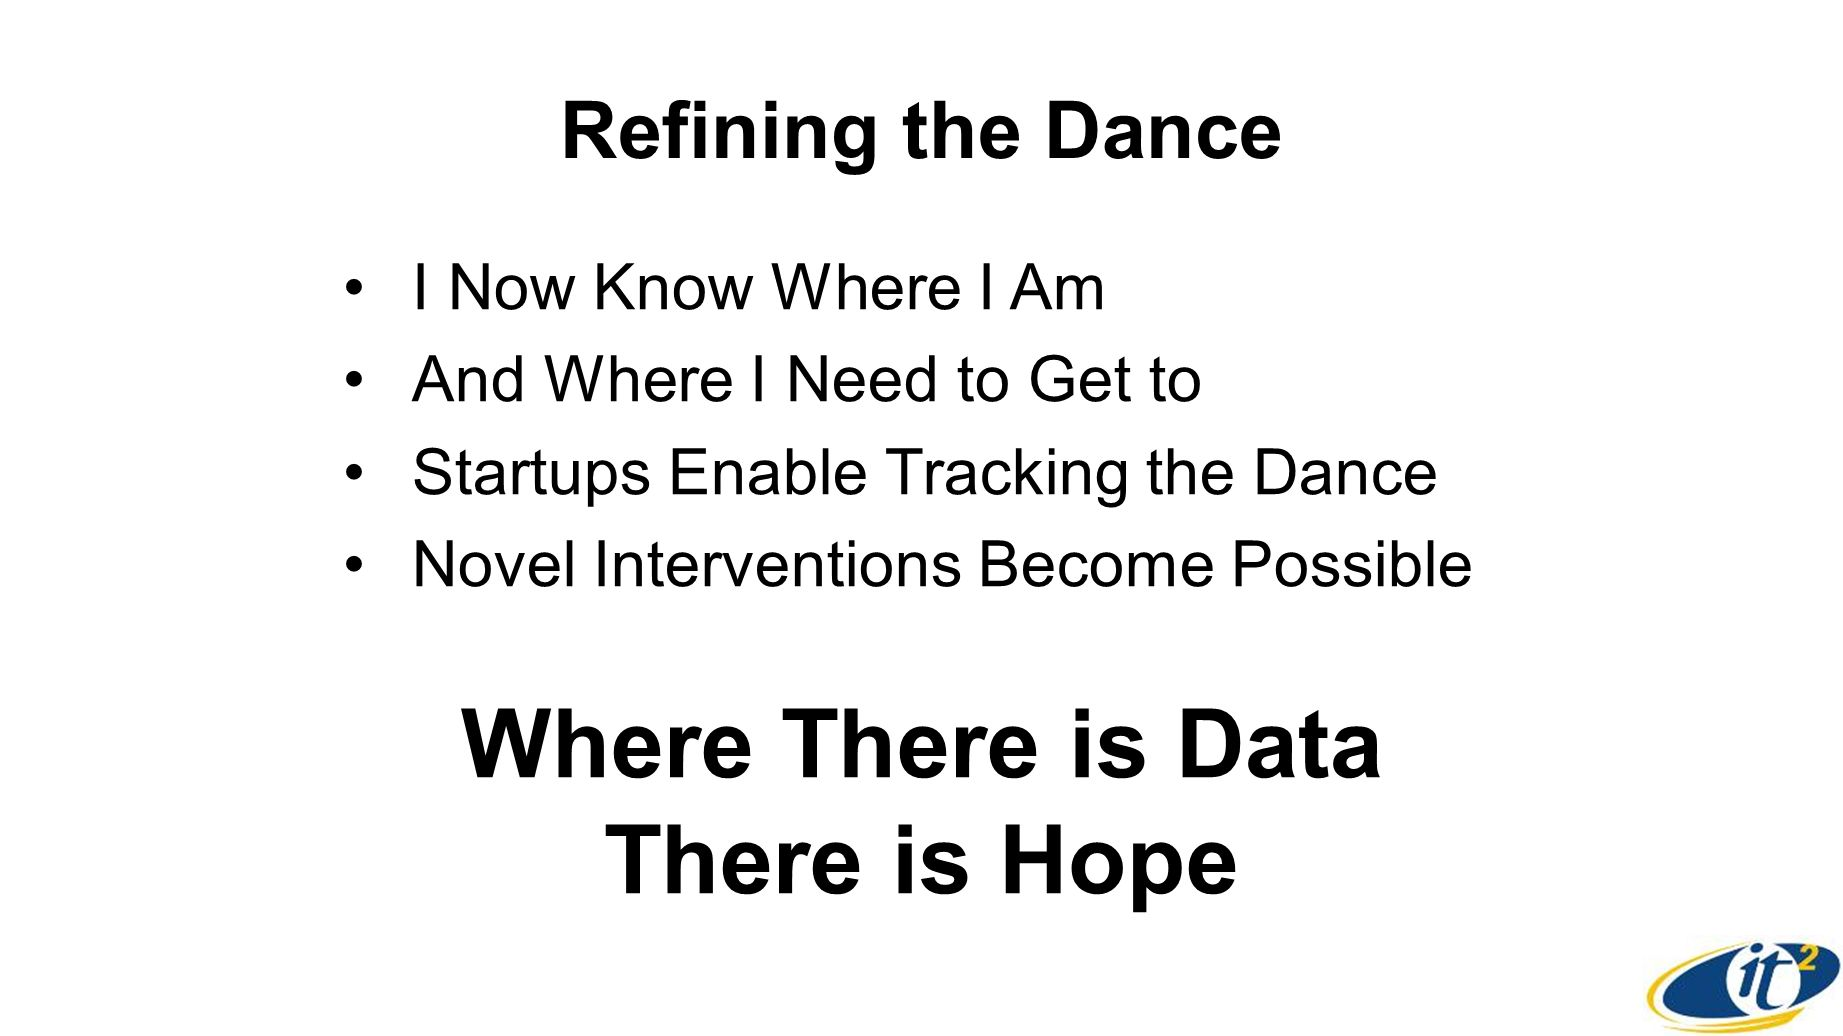 Refining the Dance I Now Know Where I Am And Where I Need to Get to Startups Enable Tracking the Dance Novel Interventions Become Possible Where There is Data There is Hope